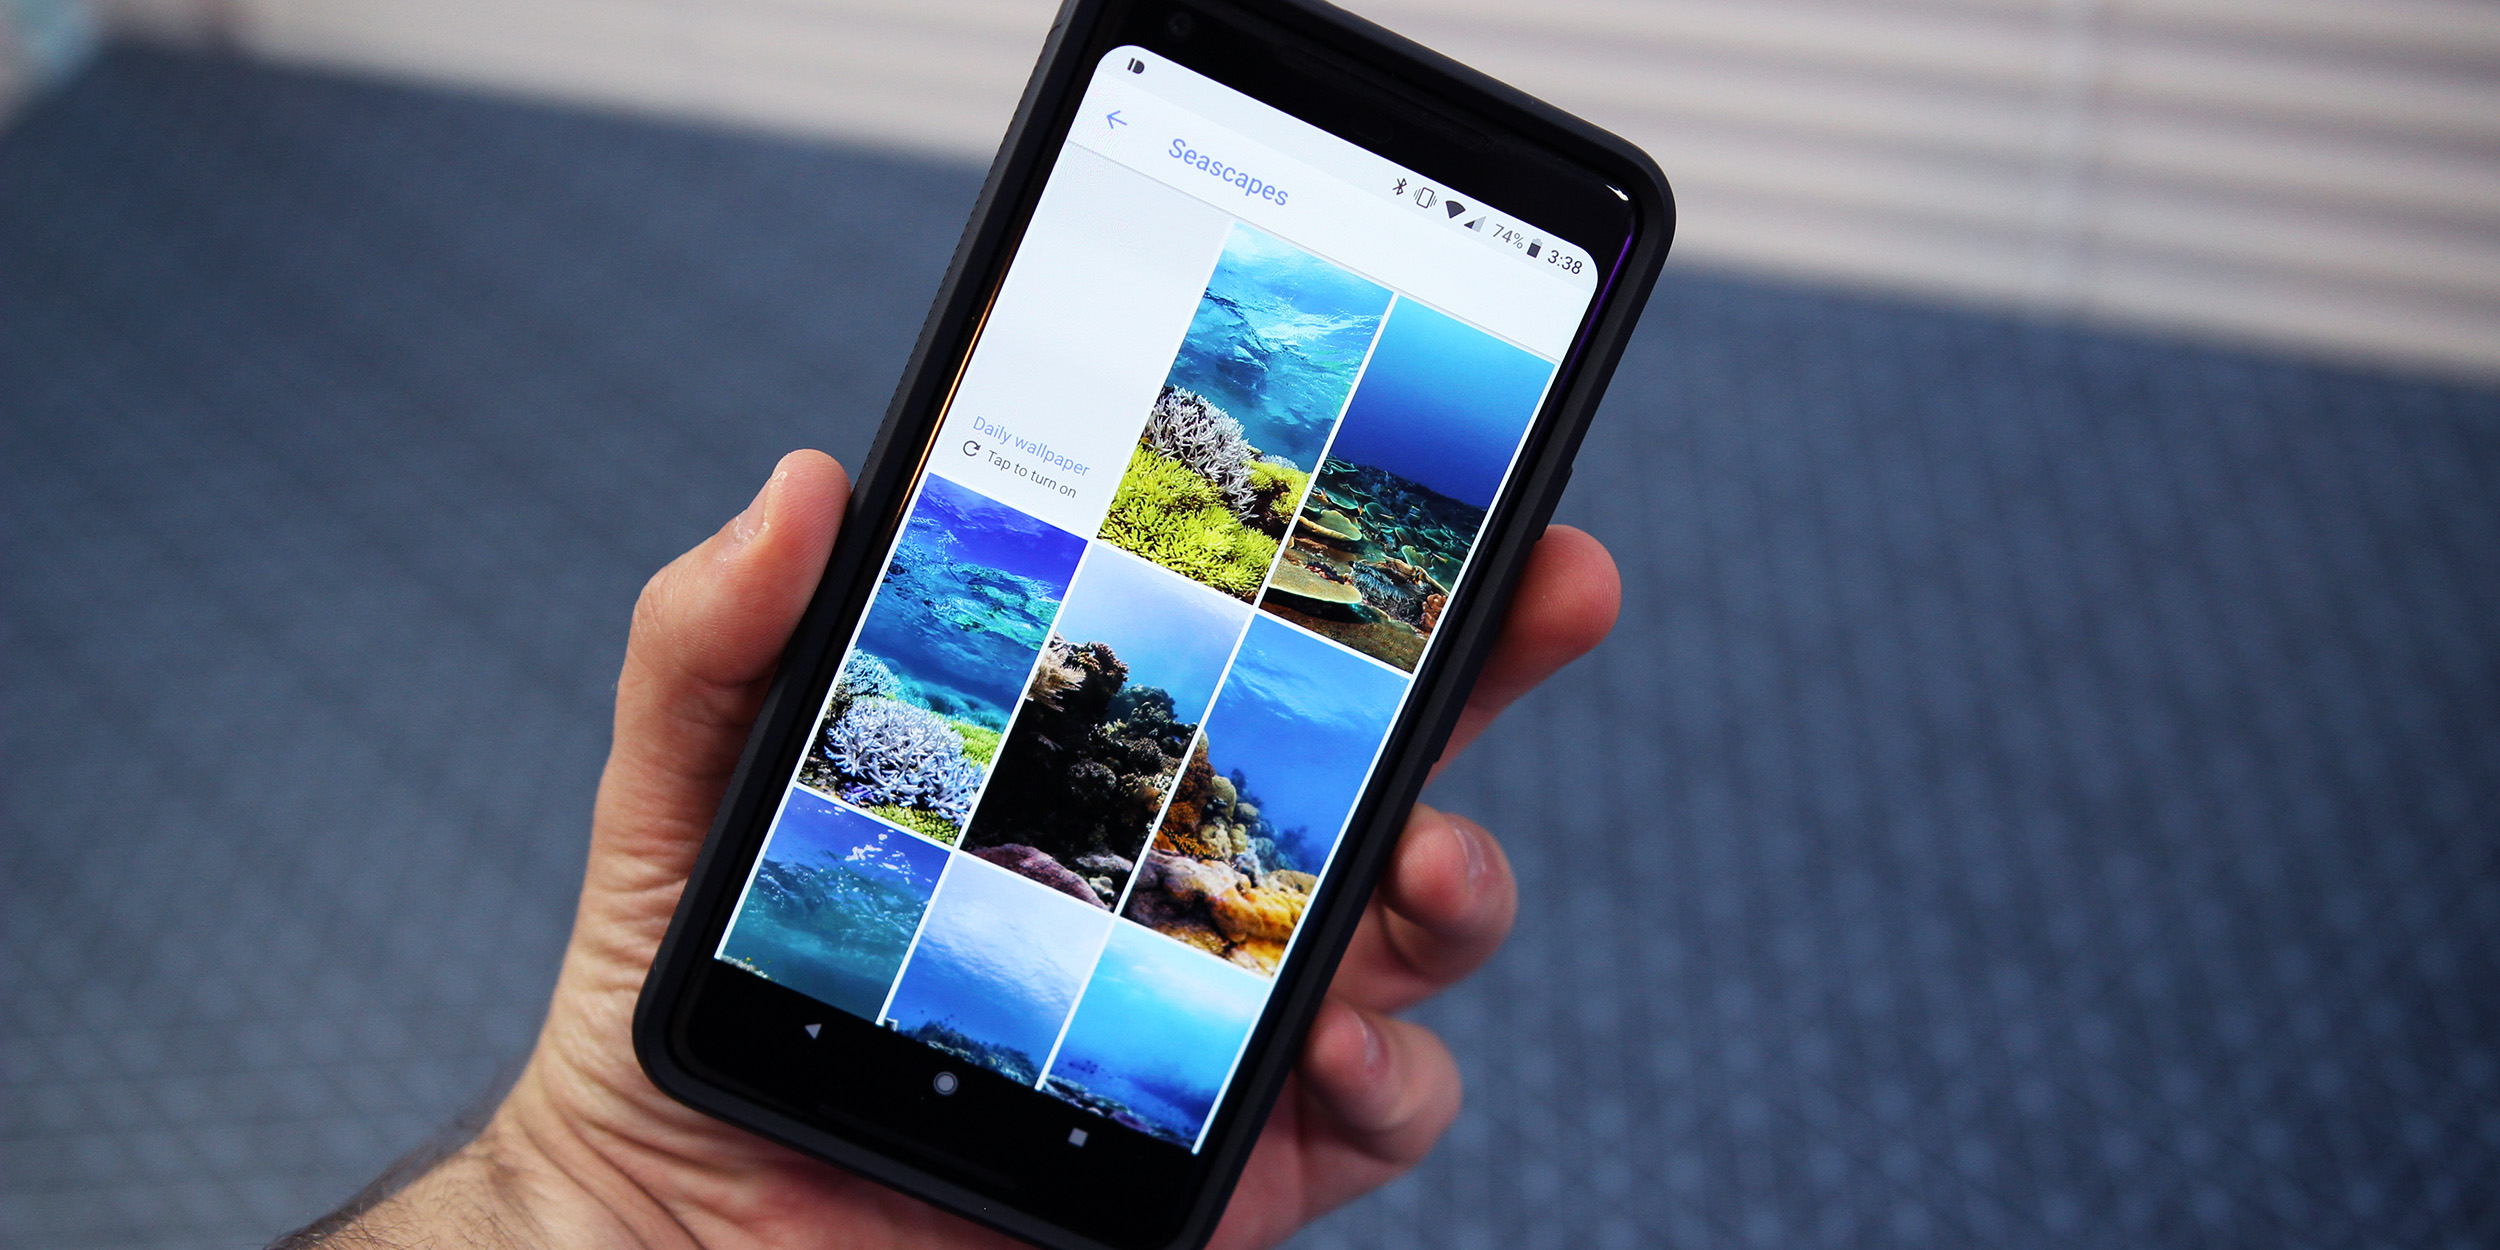 google wallpapers updates art earth and other collections w new images